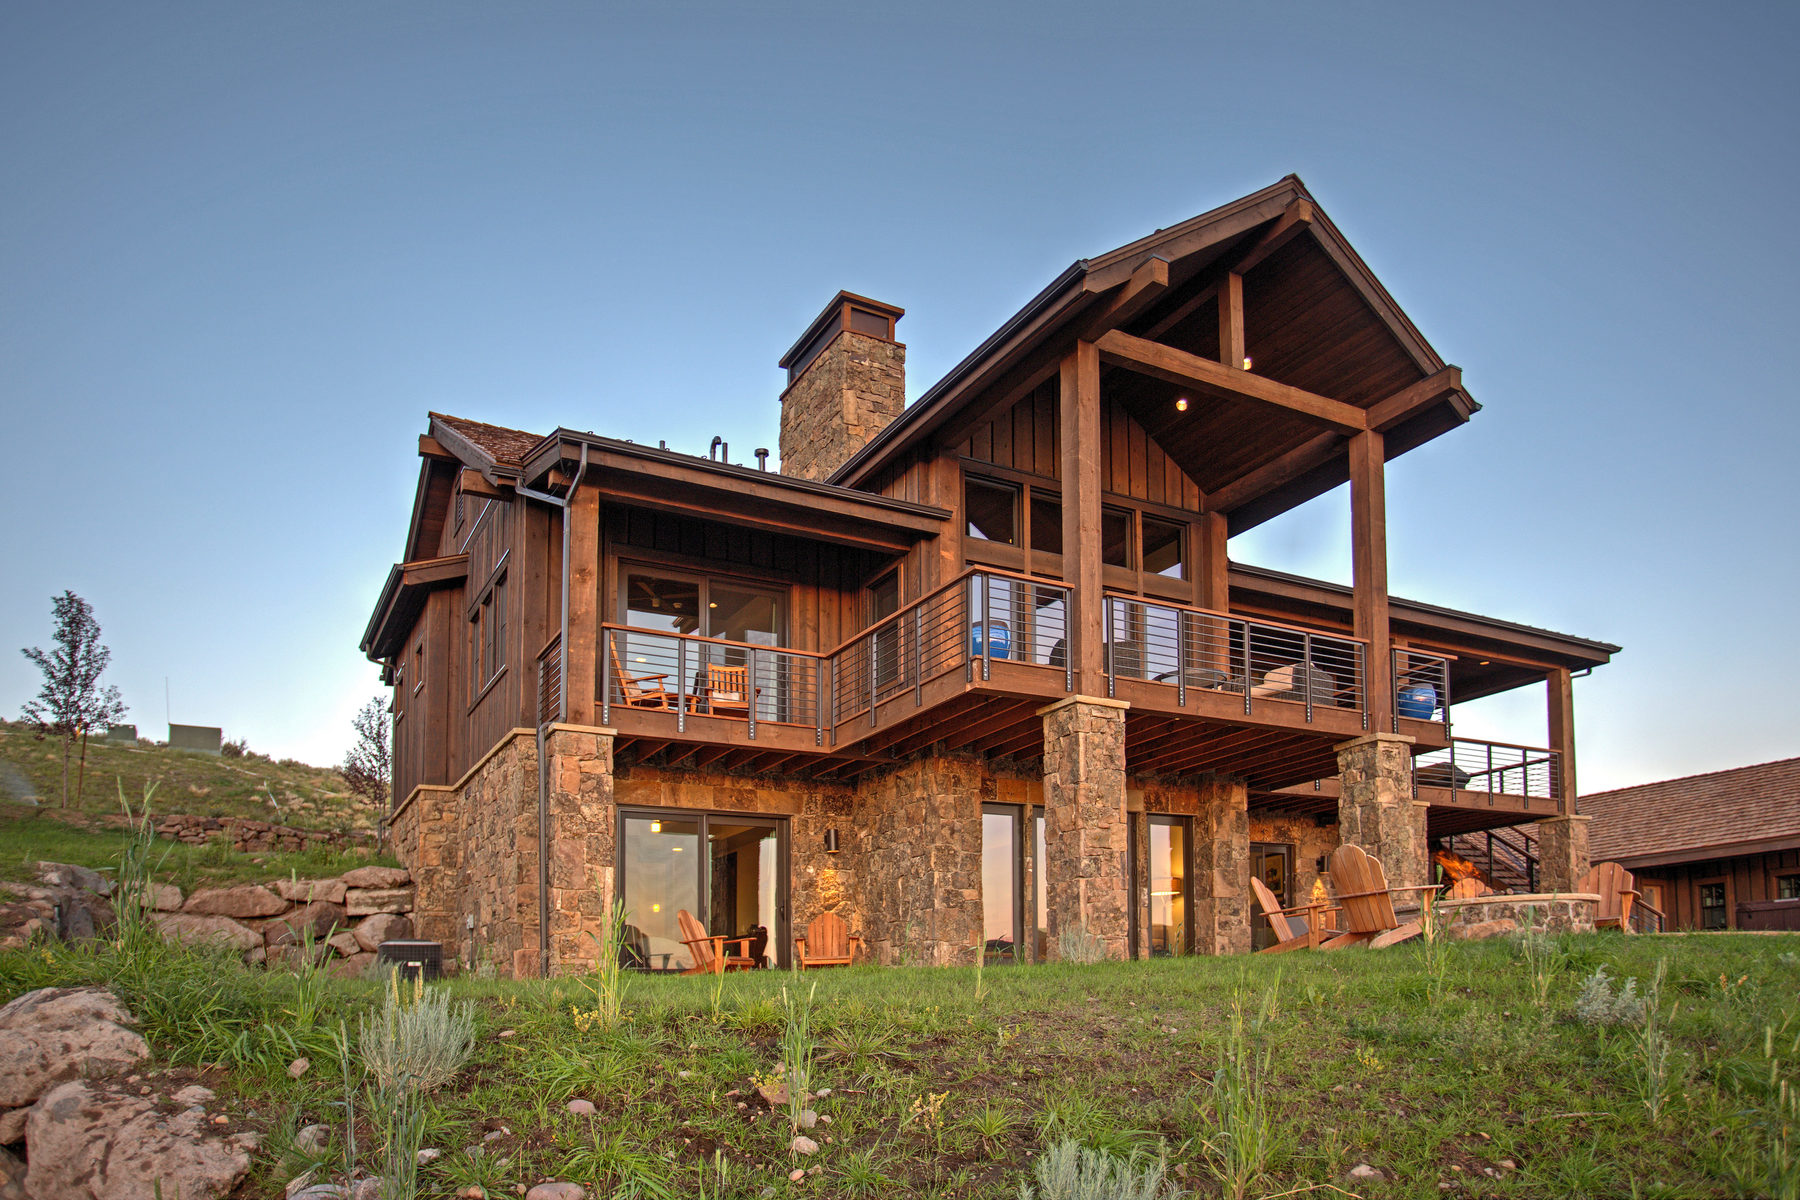 Casa Unifamiliar por un Venta en Juniper Cabin with Spectacular Views 7007 N Rees Jones Way #168 Heber City, Utah, 84032 Estados Unidos